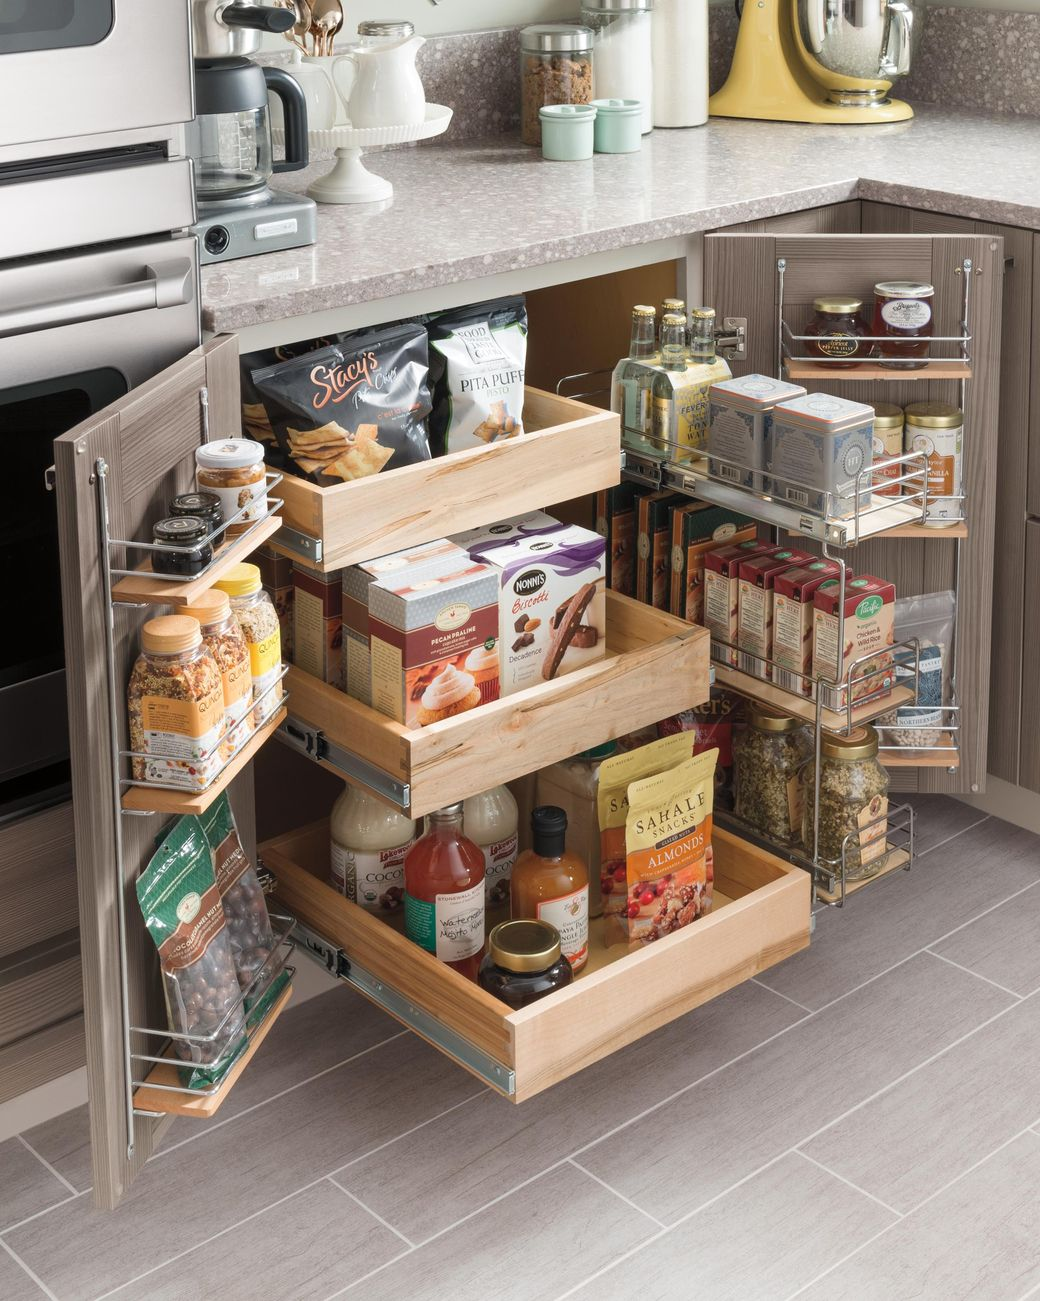 Small Kitchen Storage Ideas For A More Efficient Space Diy Kitchen Storage Kitchen Remodel Small Small Kitchen Storage